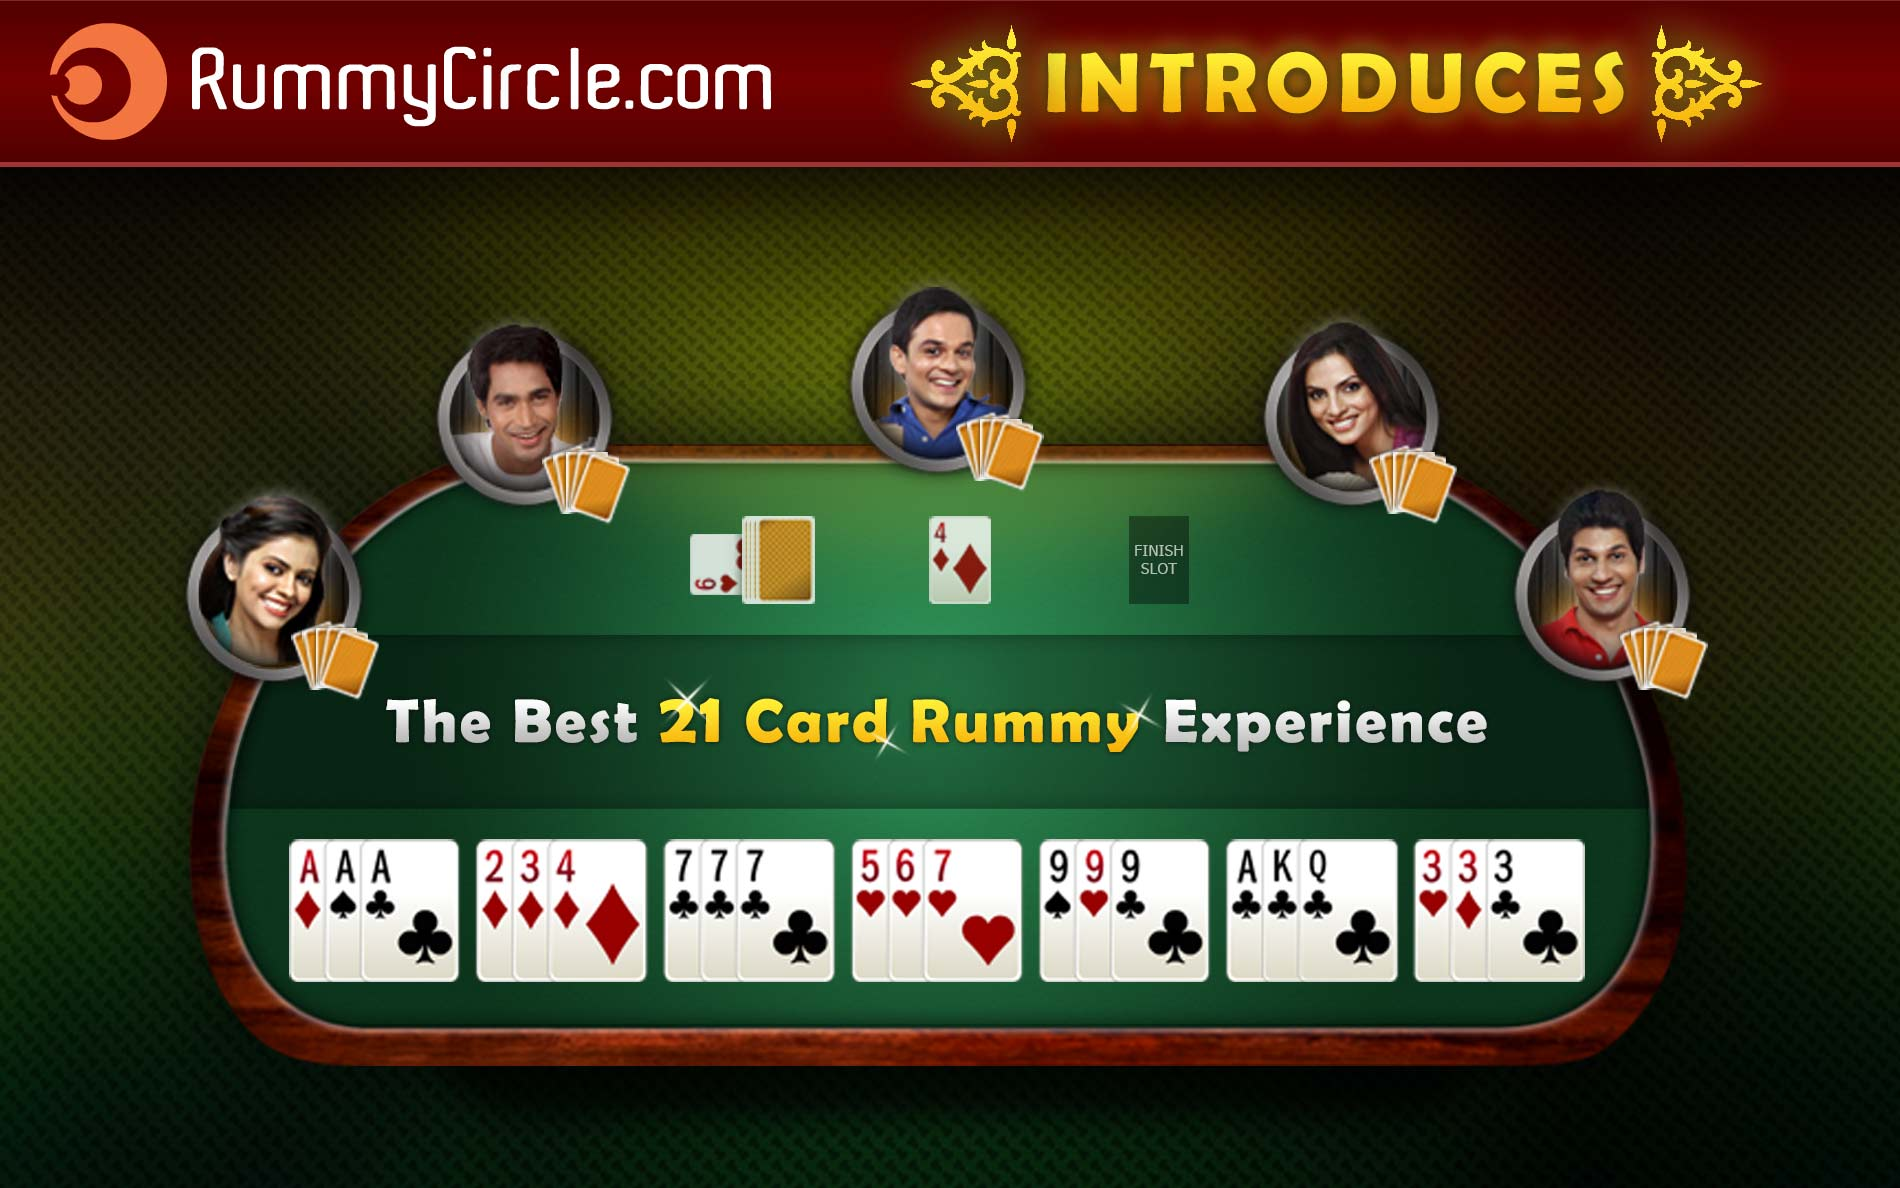 RummyCircle Introduces 21 Card Rummy